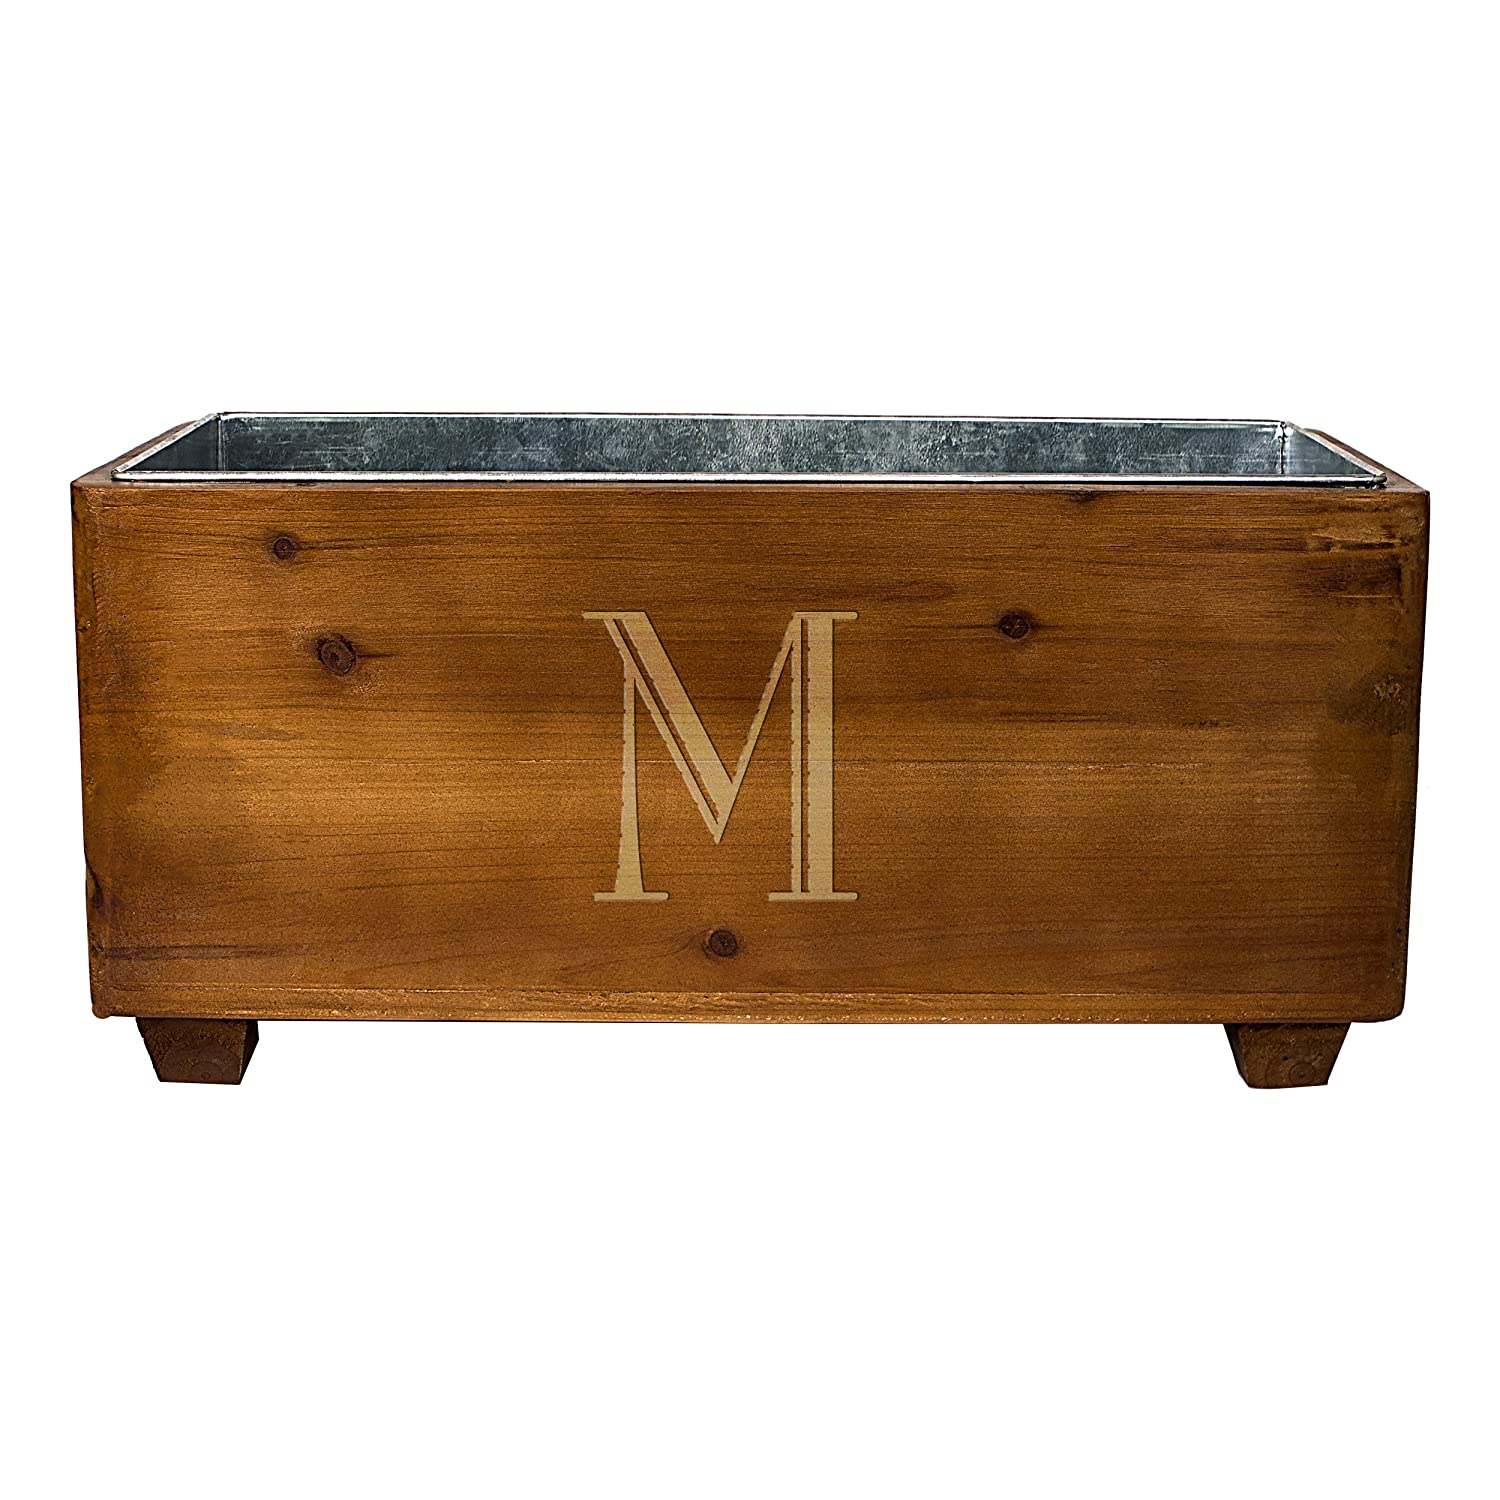 Cathy's Concepts Personalized Wooden Wine Trough, Letter A Cathy's Concepts 2294-A